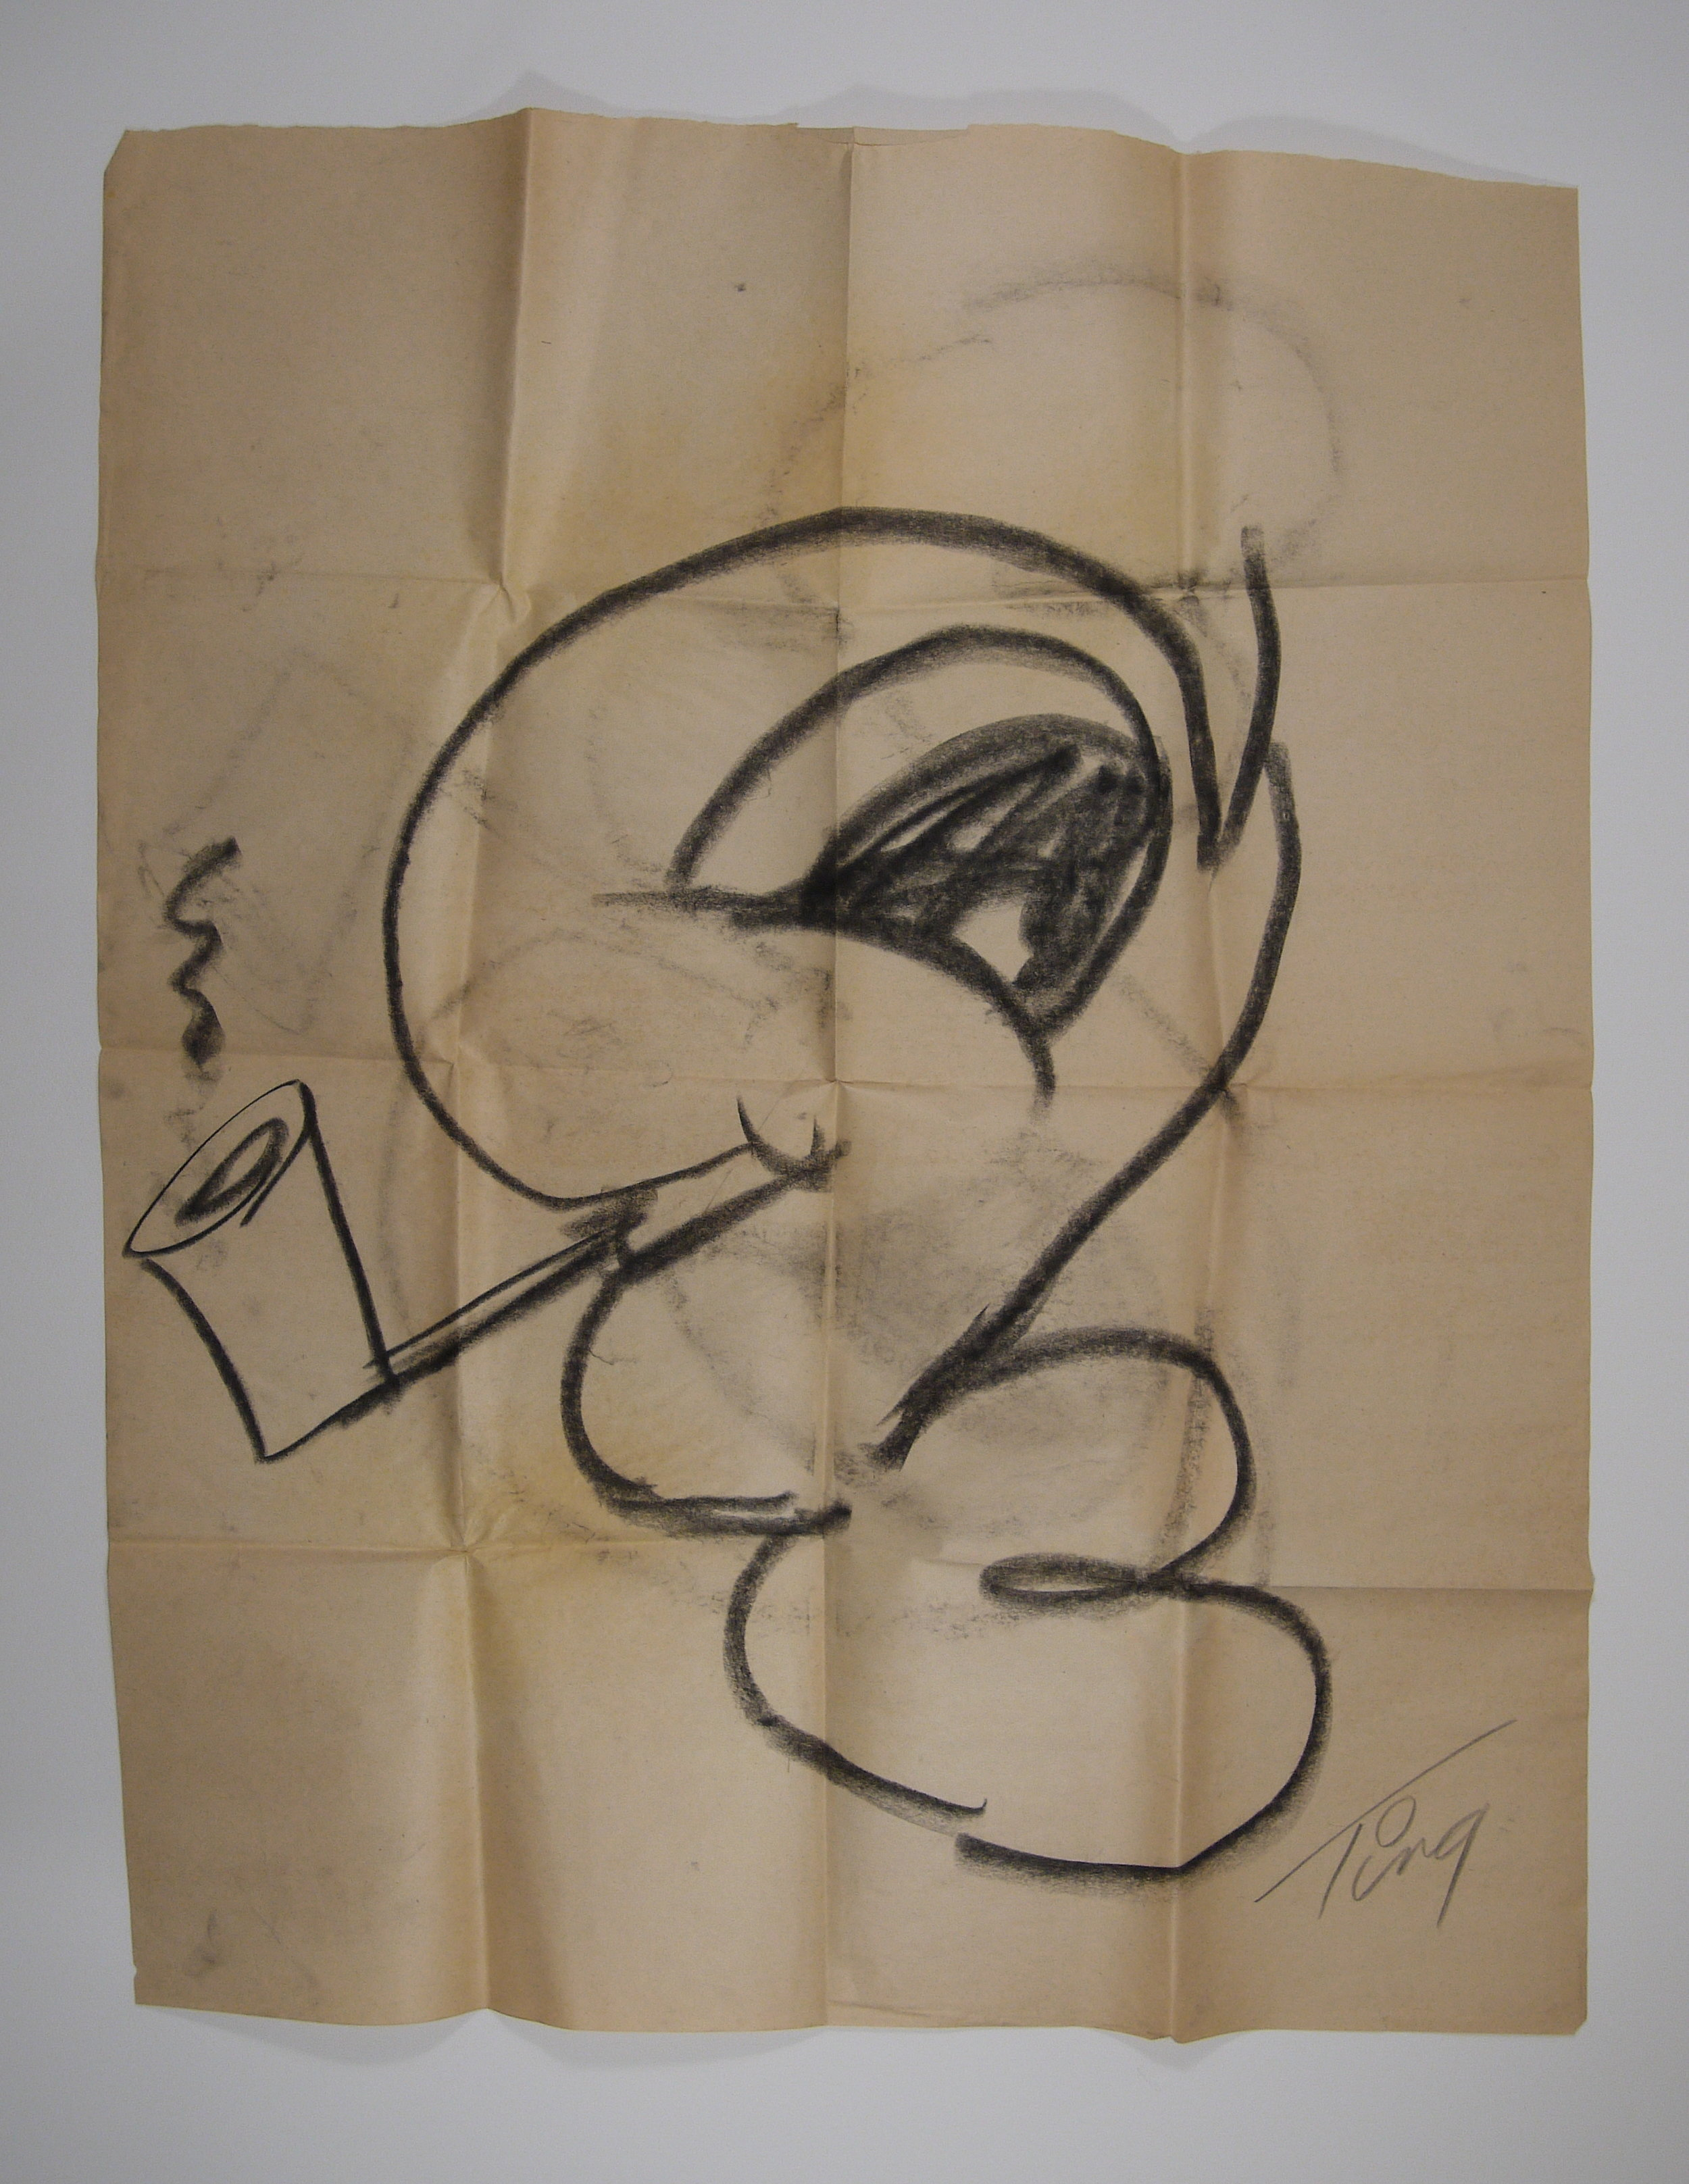 Luke Worm  sketch by Merle Tingley, before conservation.